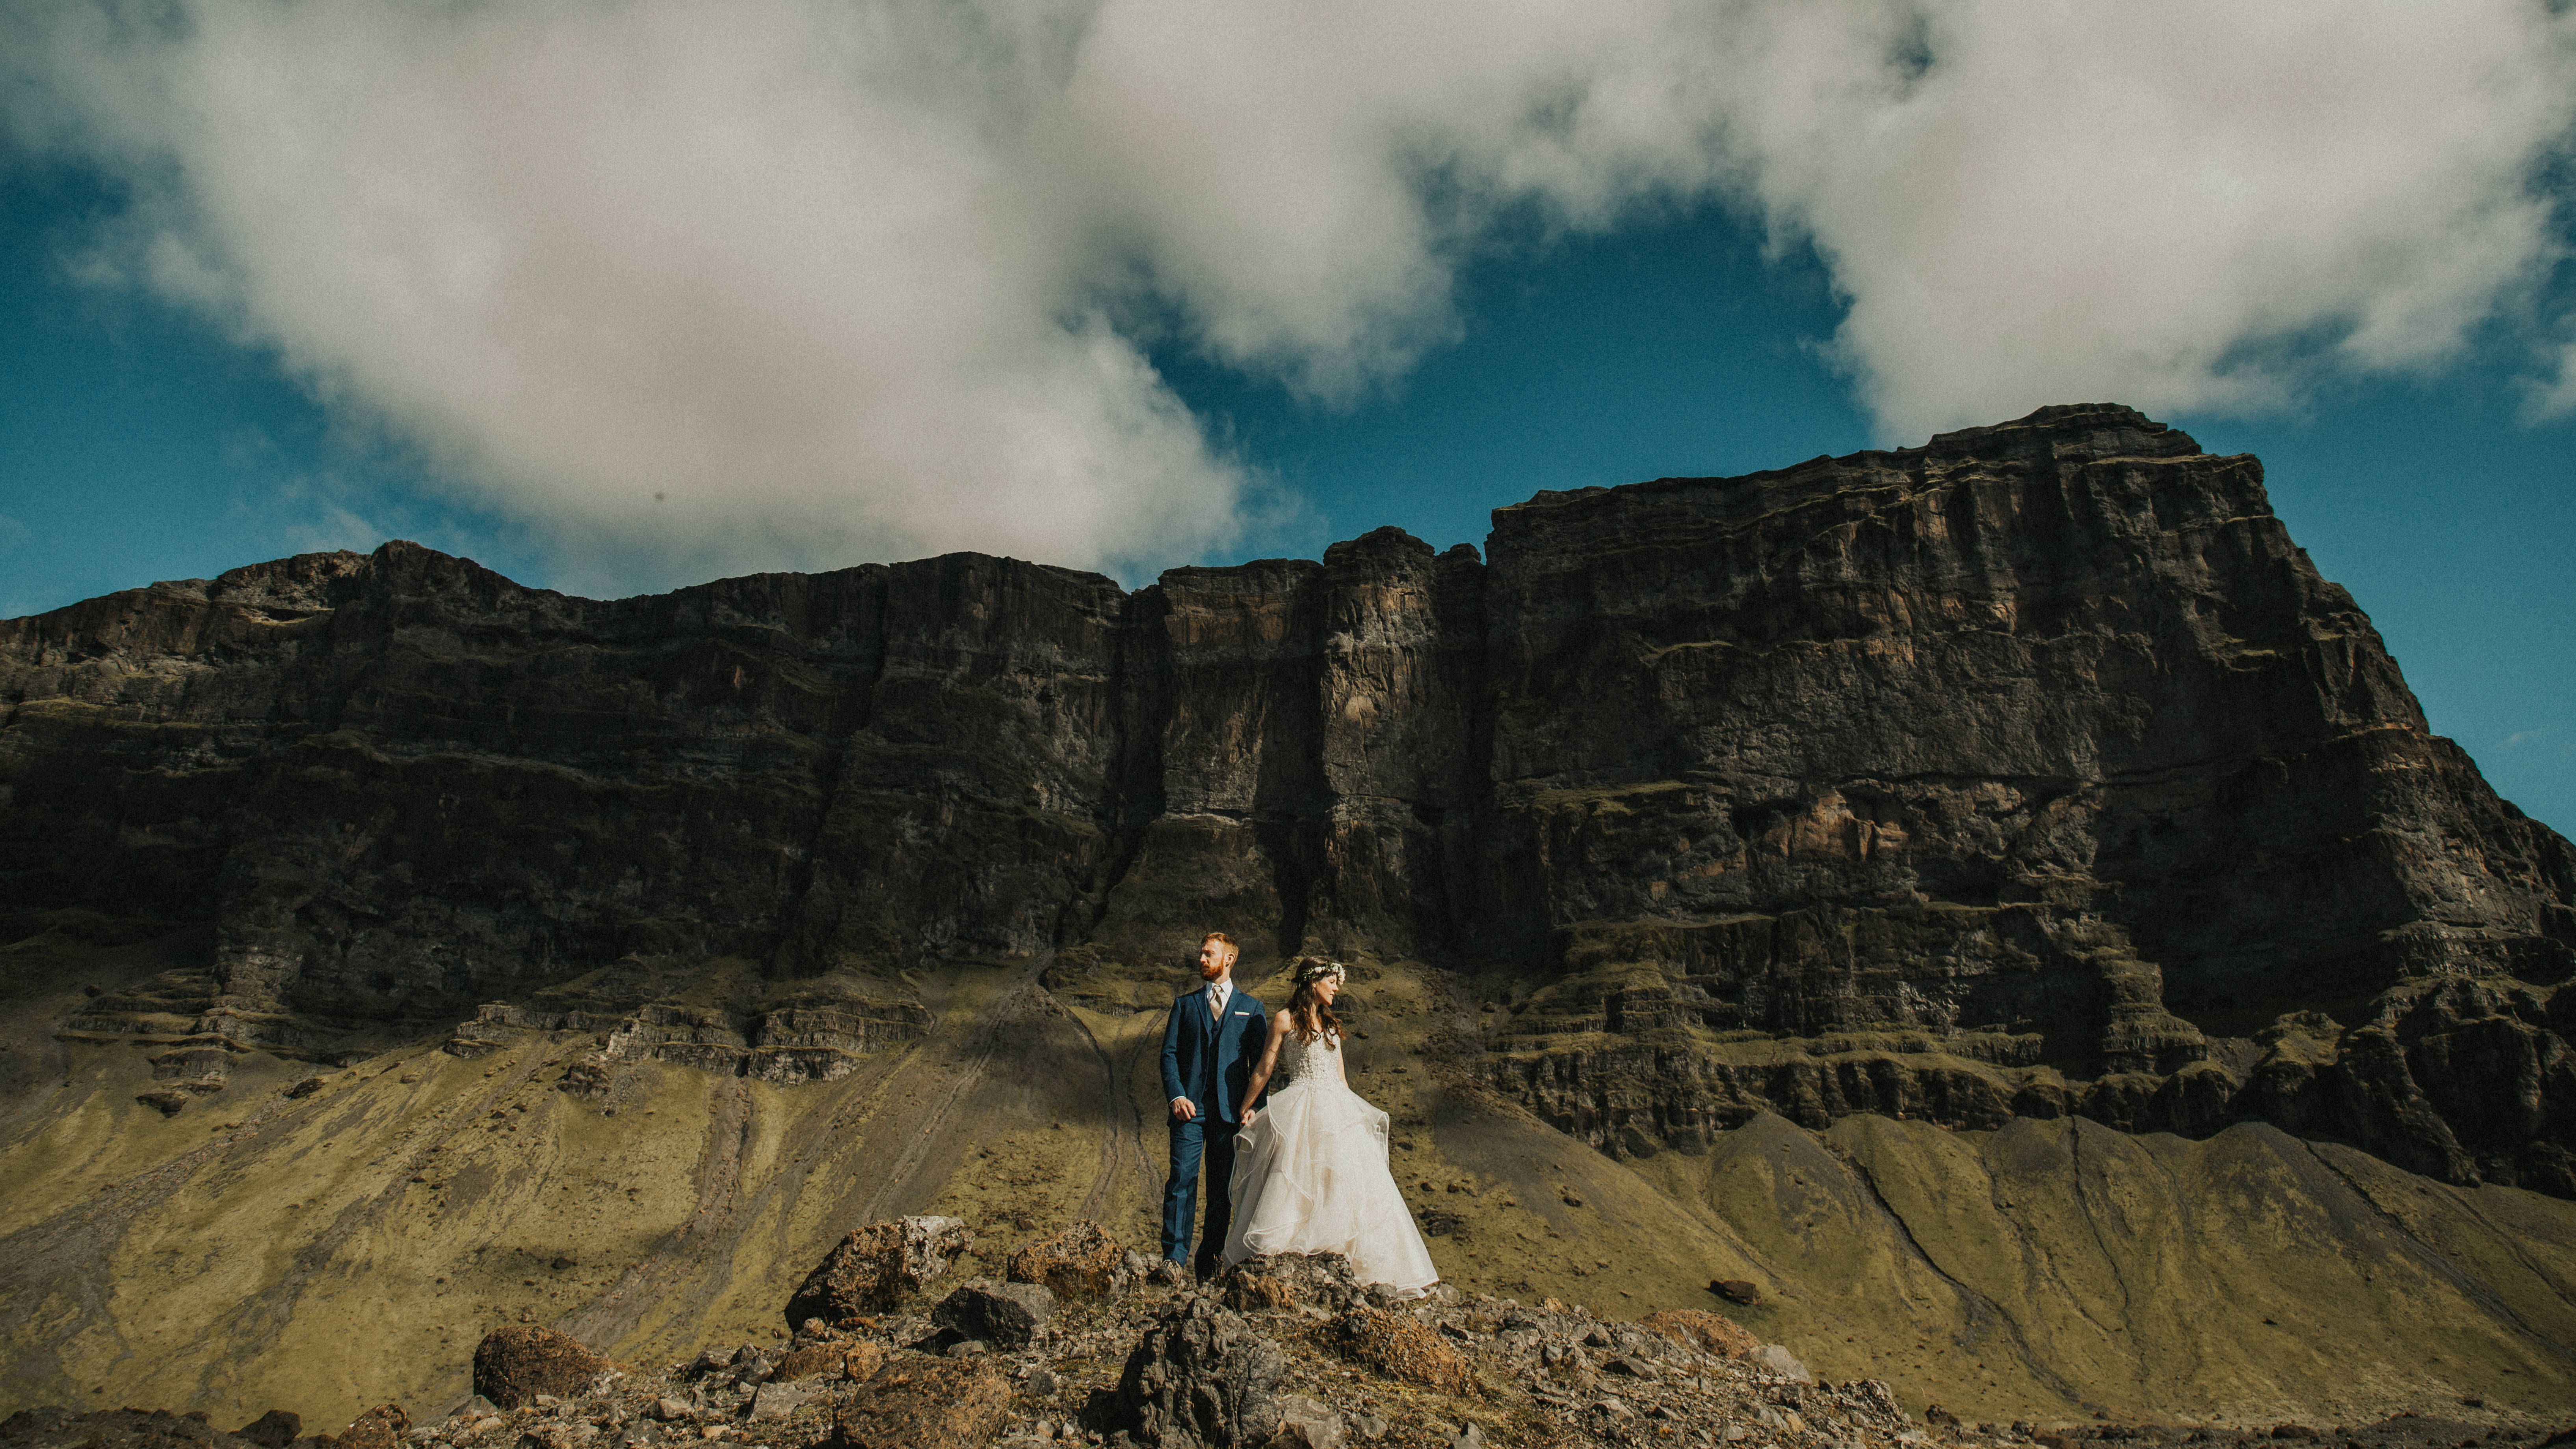 Christina + Kyle | Iceland, Iceland | a cliff